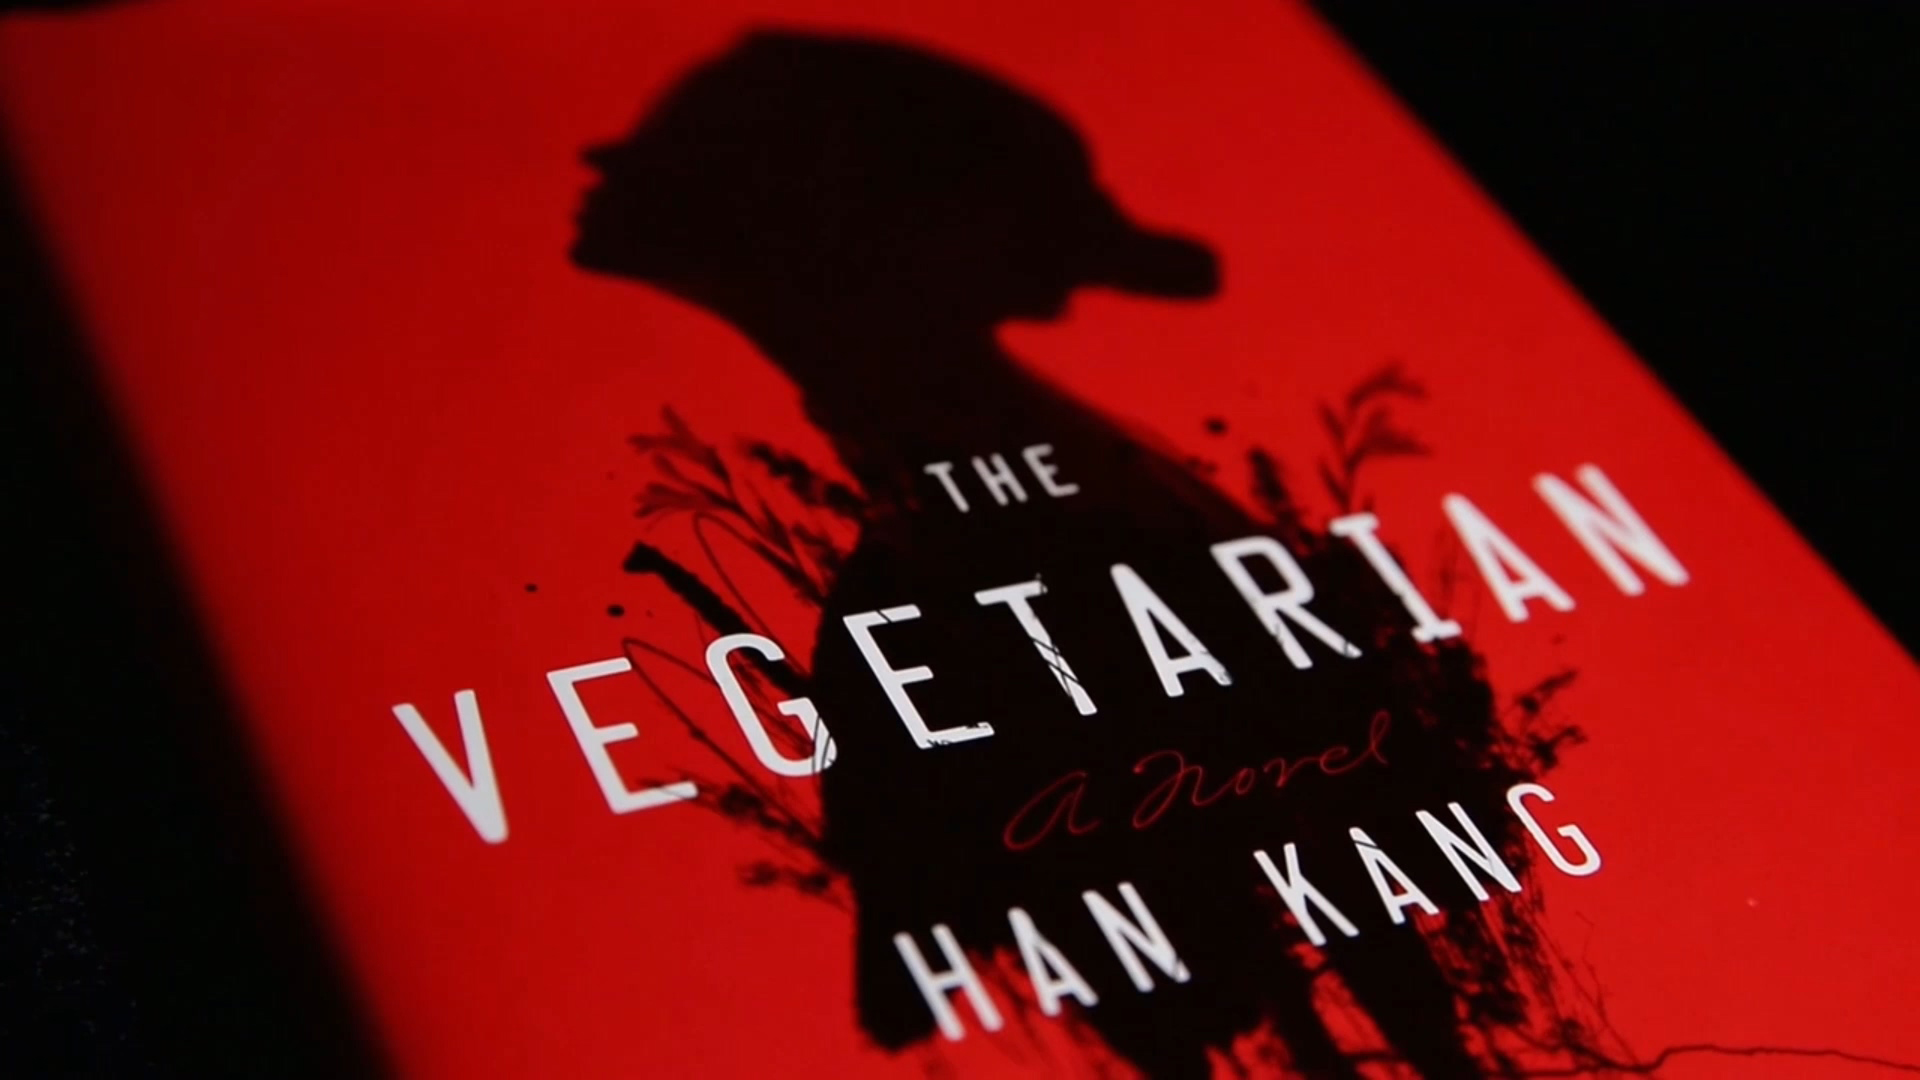 [Heart to Heart] 'The Vegetarian' told by Joseph LEE [CEO Joseph Lee]